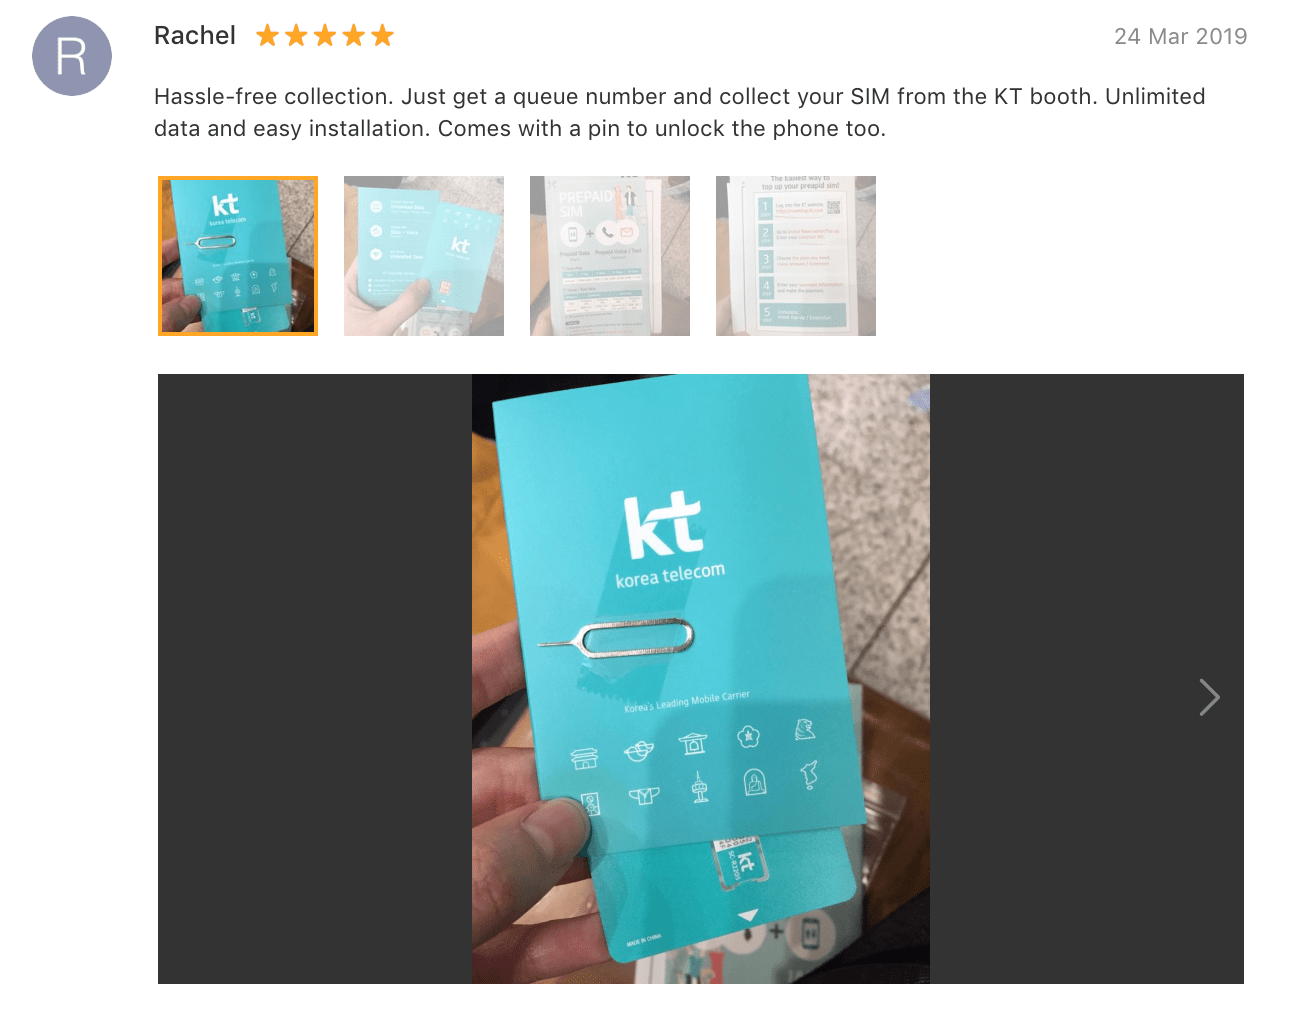 'Hassle-free collection. Just get a queue number and collect your SIM from the KT booth. Unlimited data and easy installation. Comes with a pin to unlock the phone too.' -